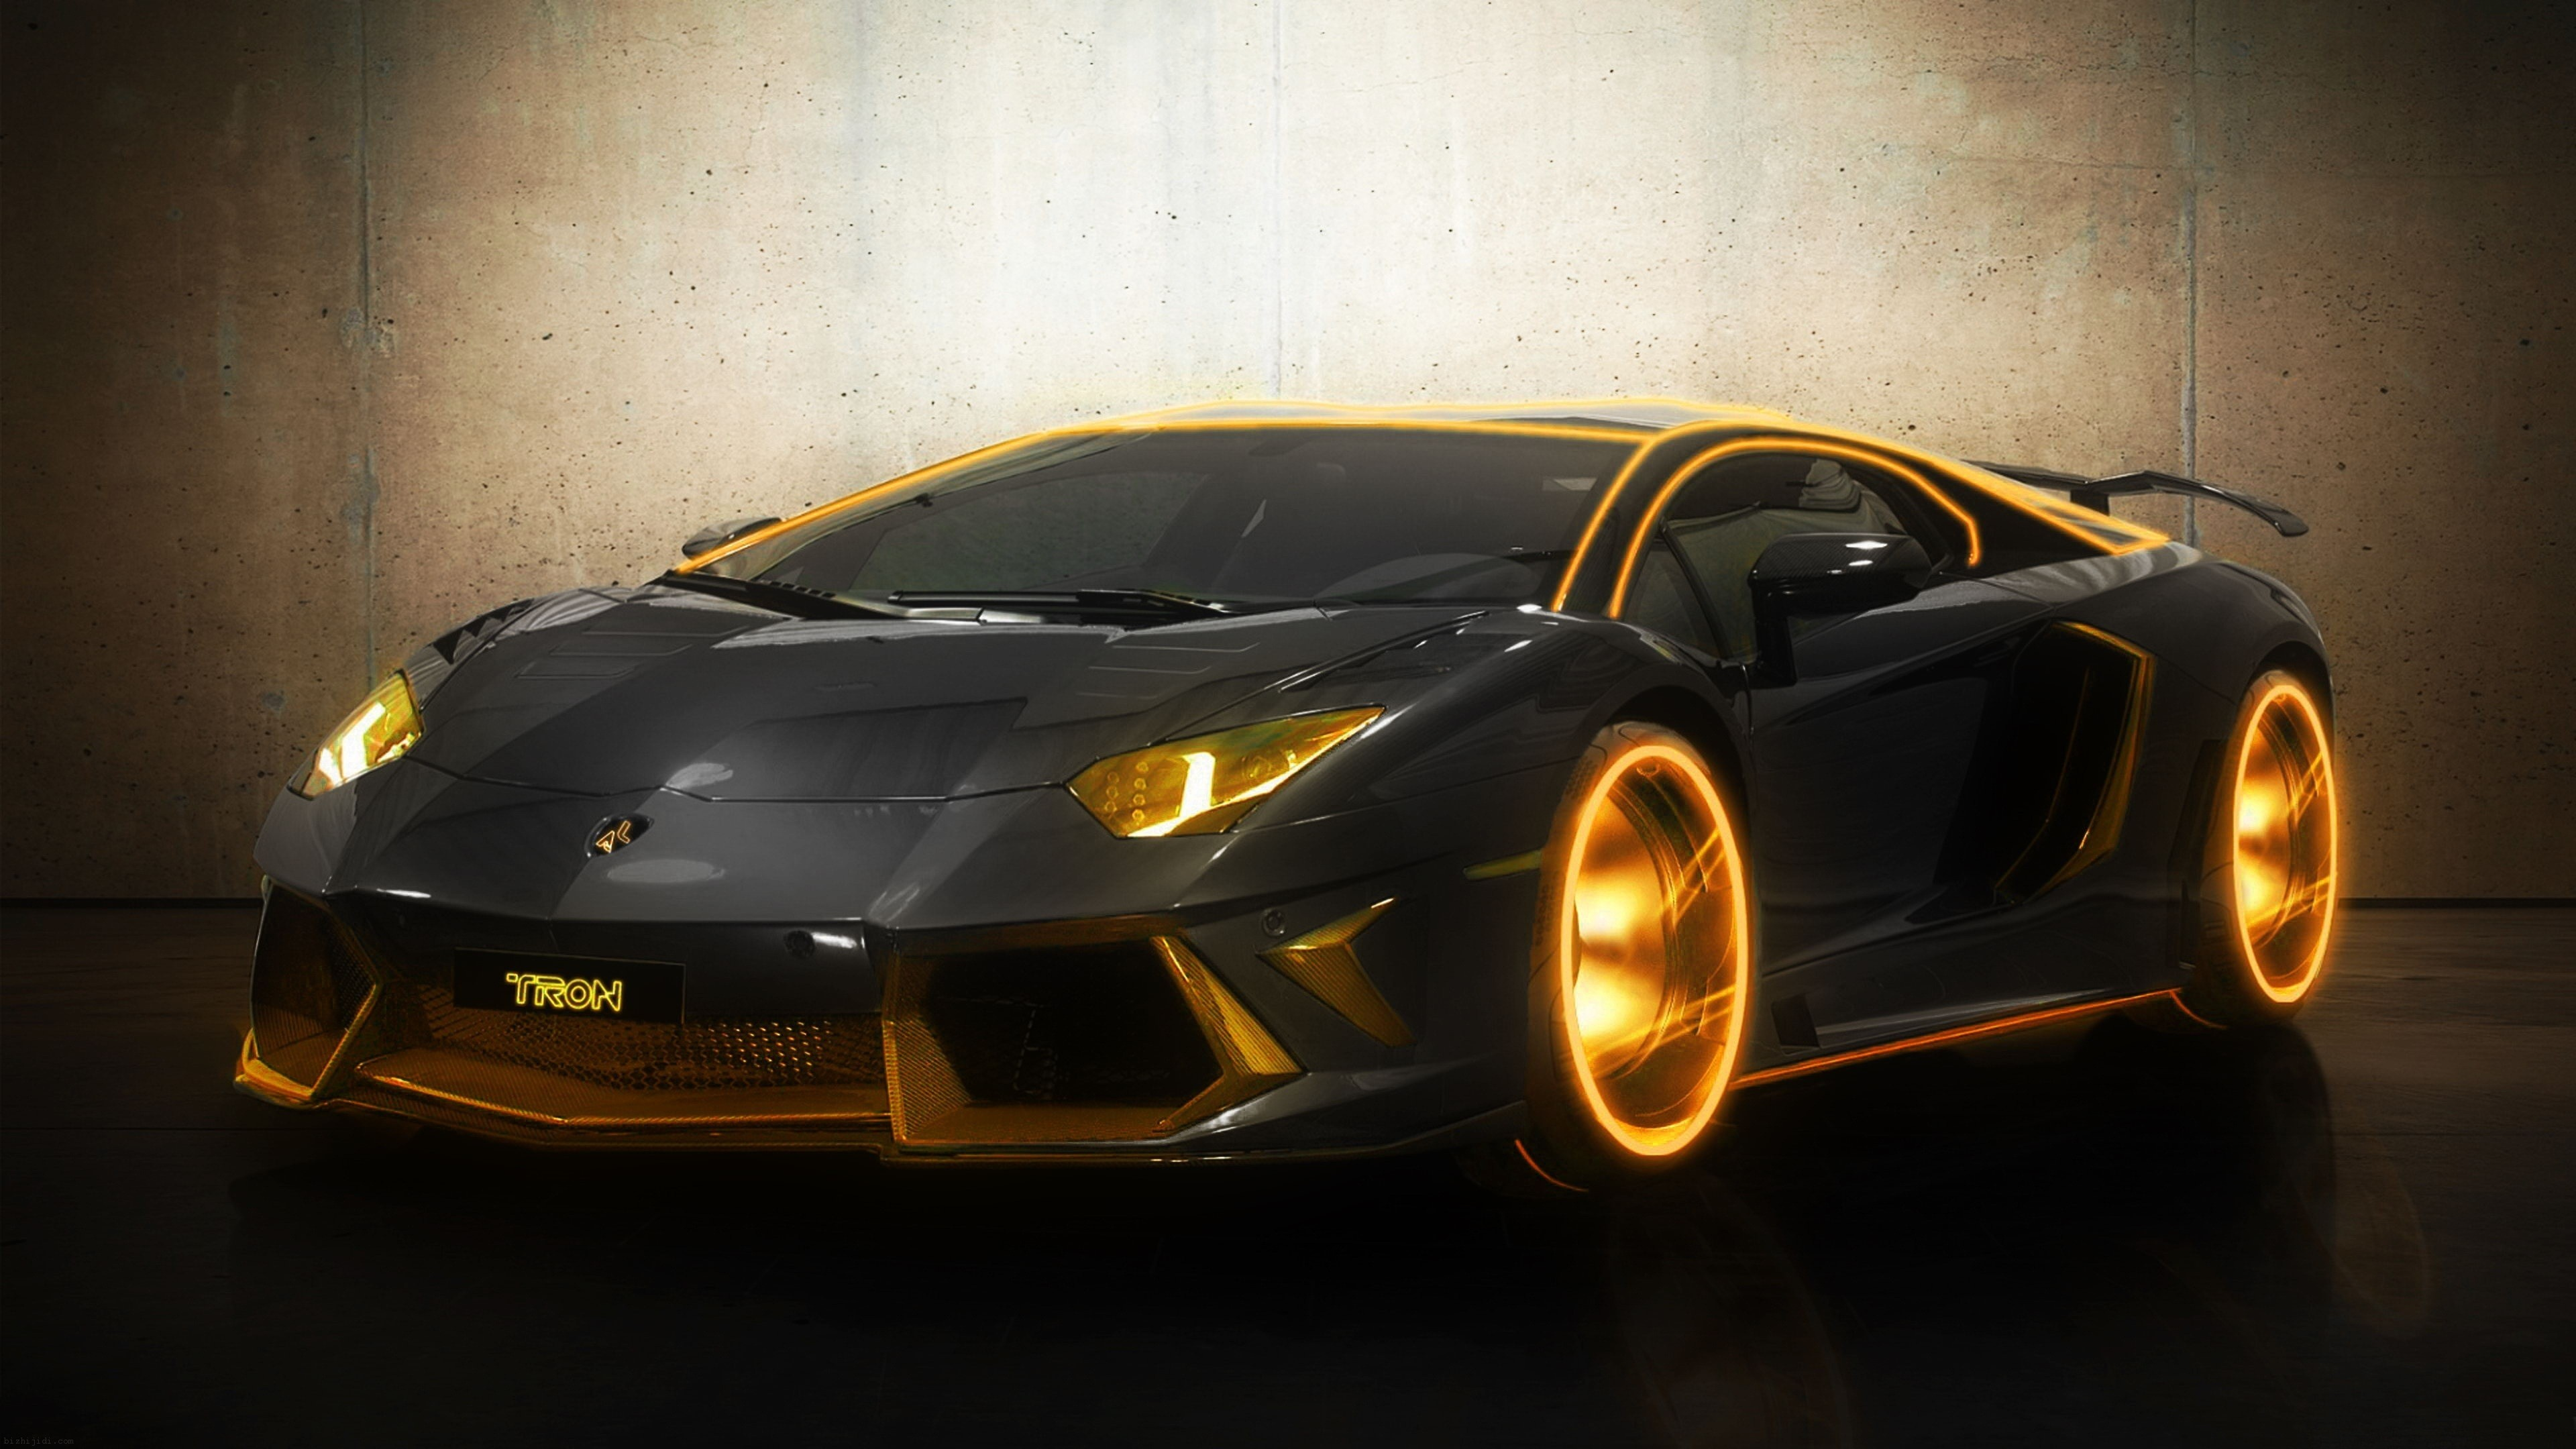 Lamborghini Aventador J 4k Ultra Hd Wallpaper Background Image